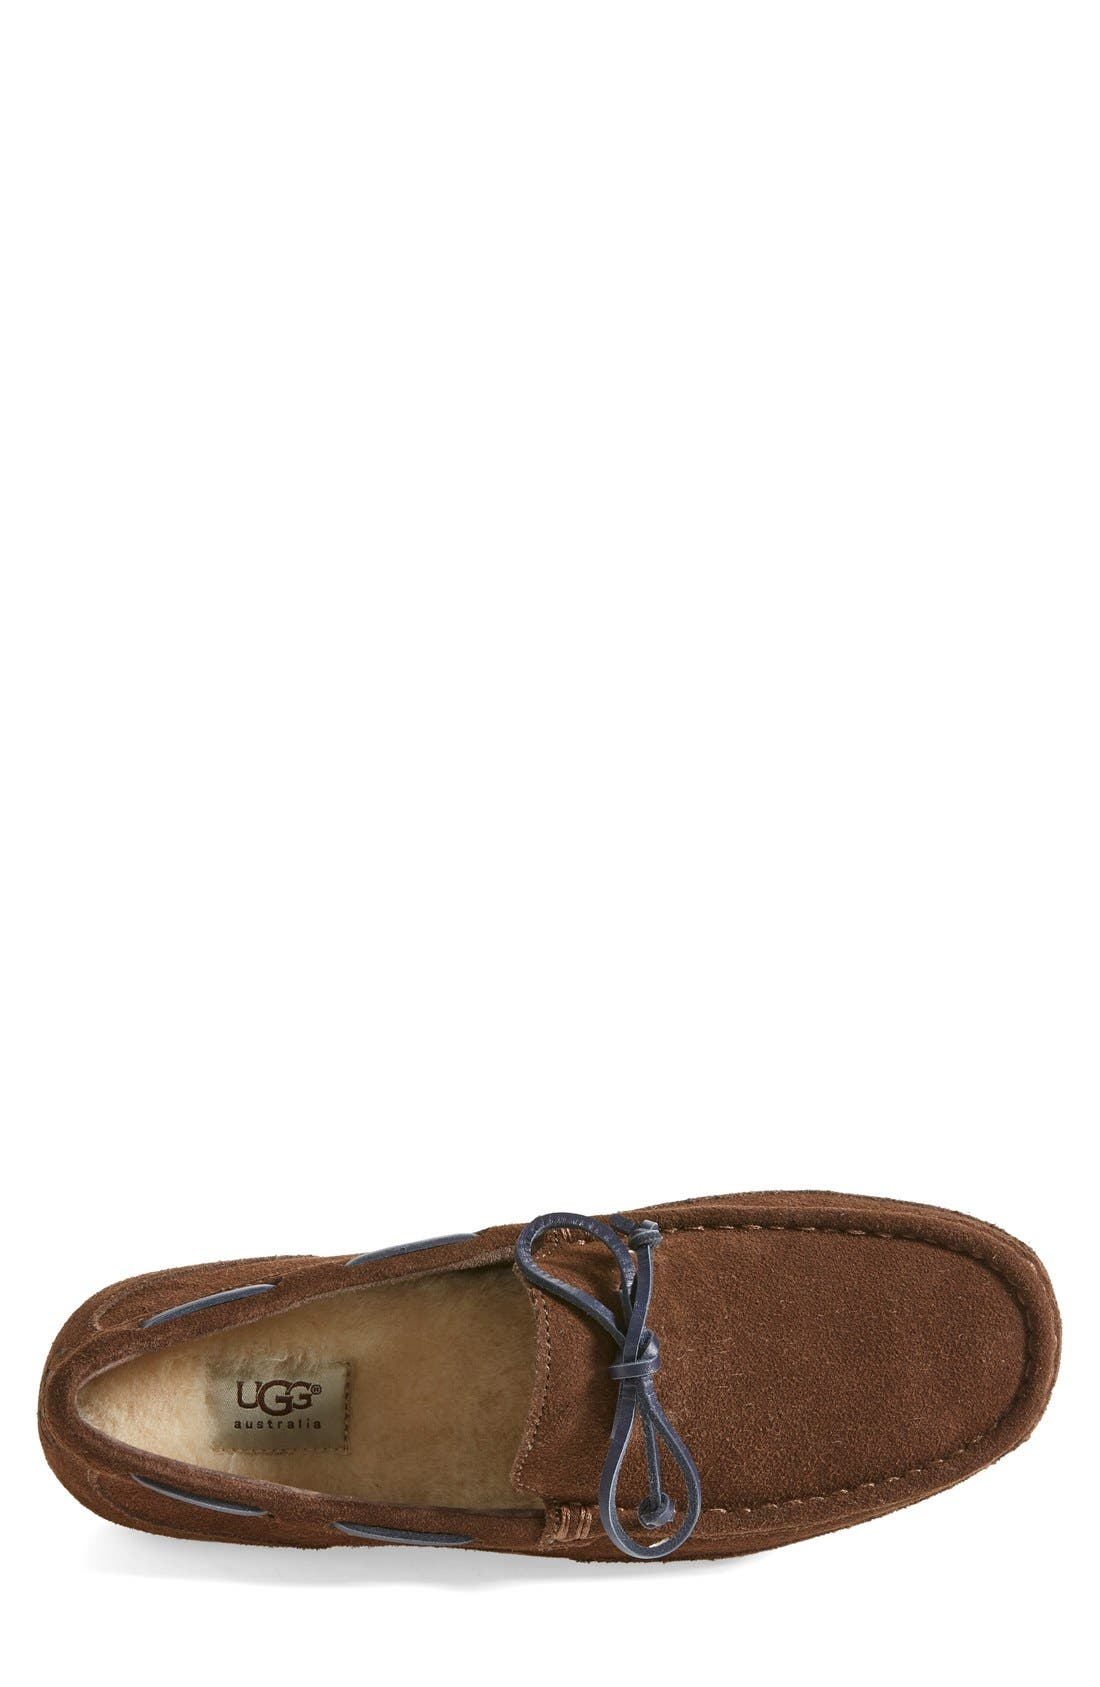 'Chester' Driving Loafer,                             Alternate thumbnail 13, color,